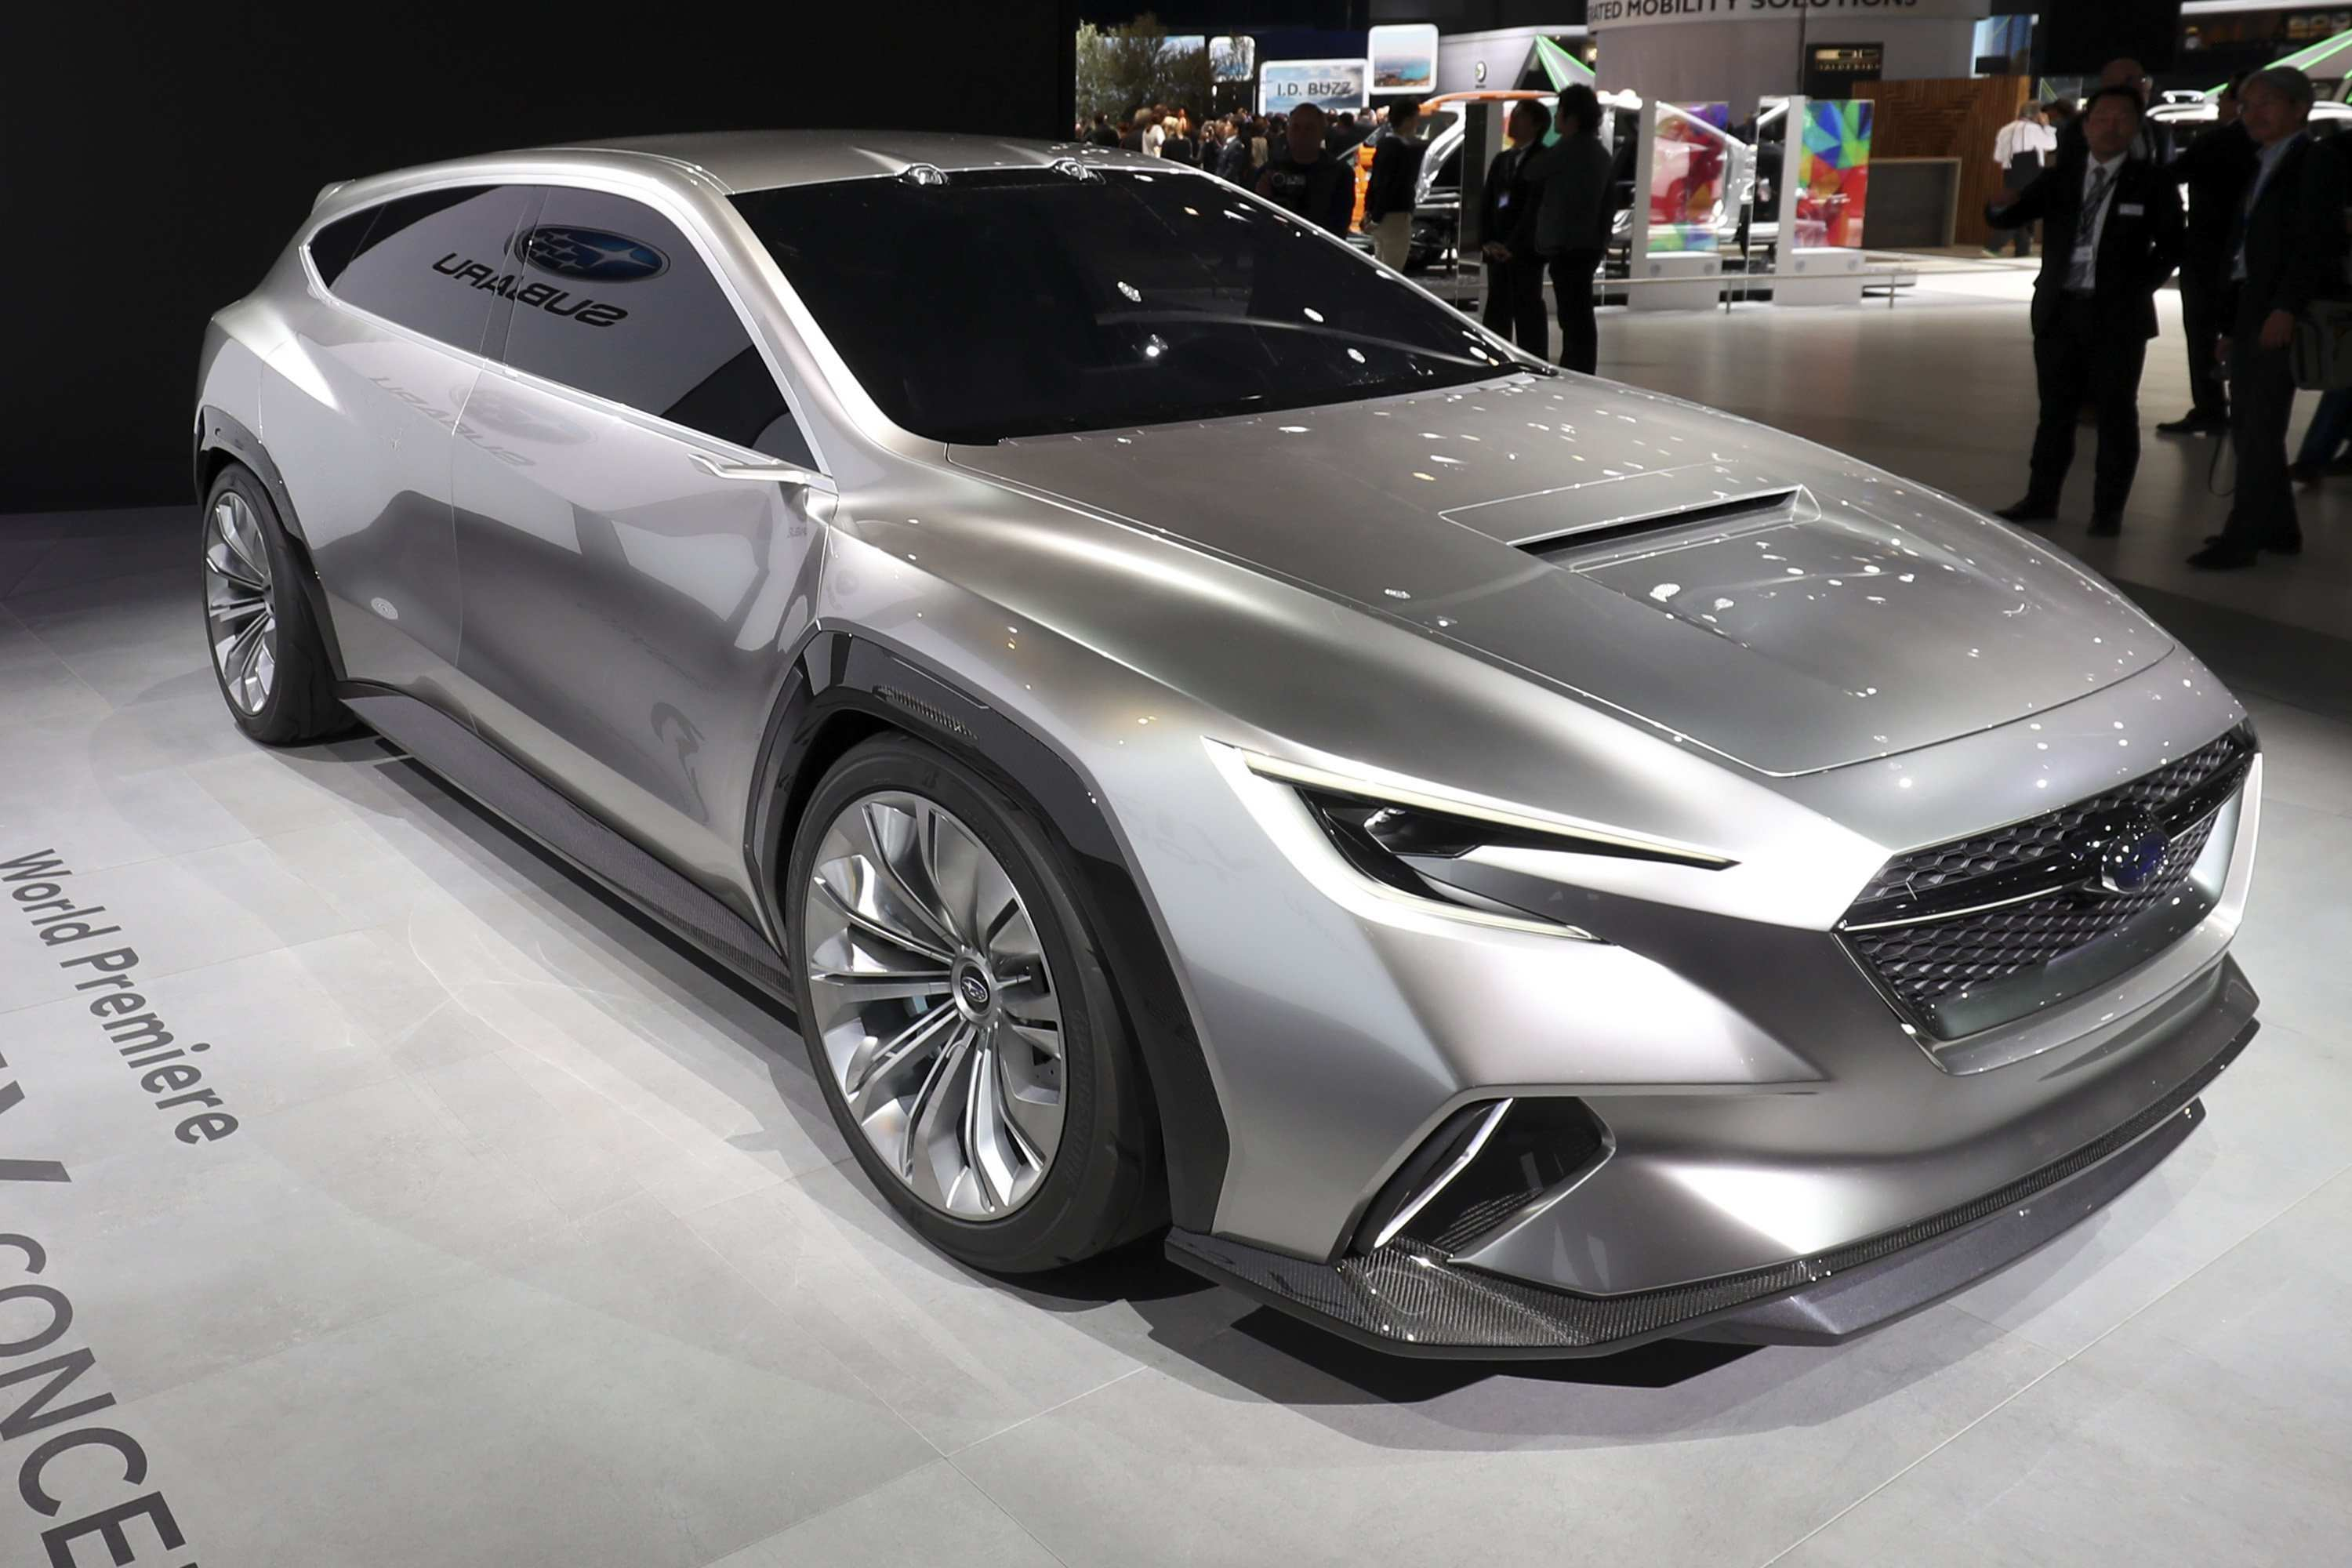 20 Great 2020 Subaru Outback Concept Price for 2020 Subaru Outback Concept